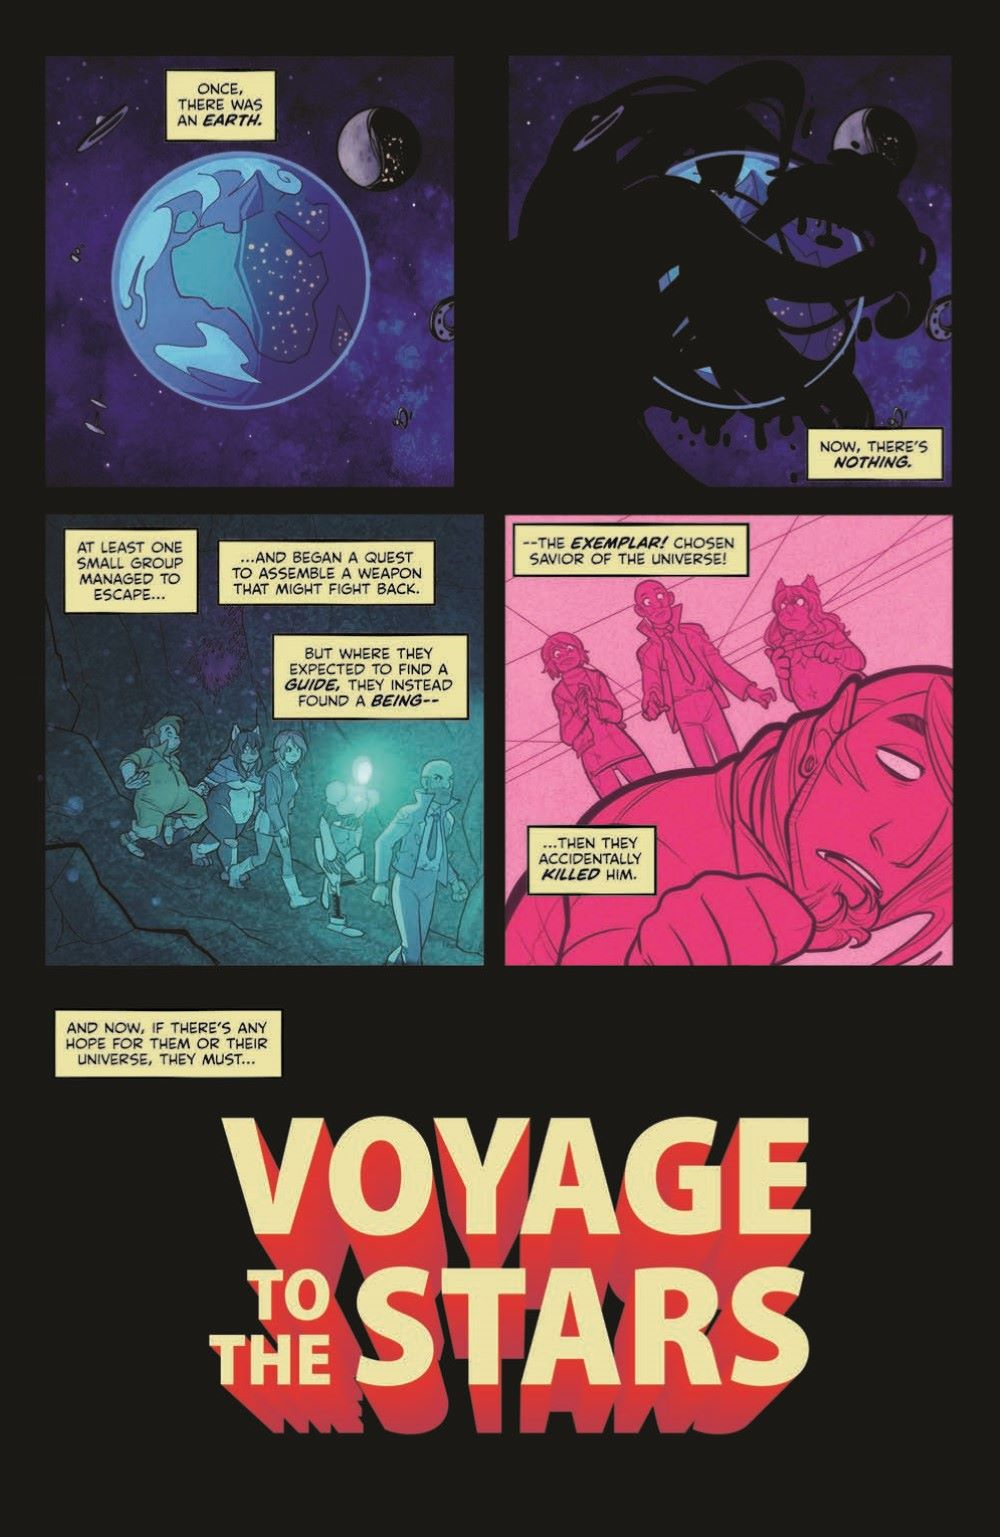 VoyageToTheStars_02-pr-3 ComicList Previews: VOYAGE TO THE STARS #3 (OF 4)